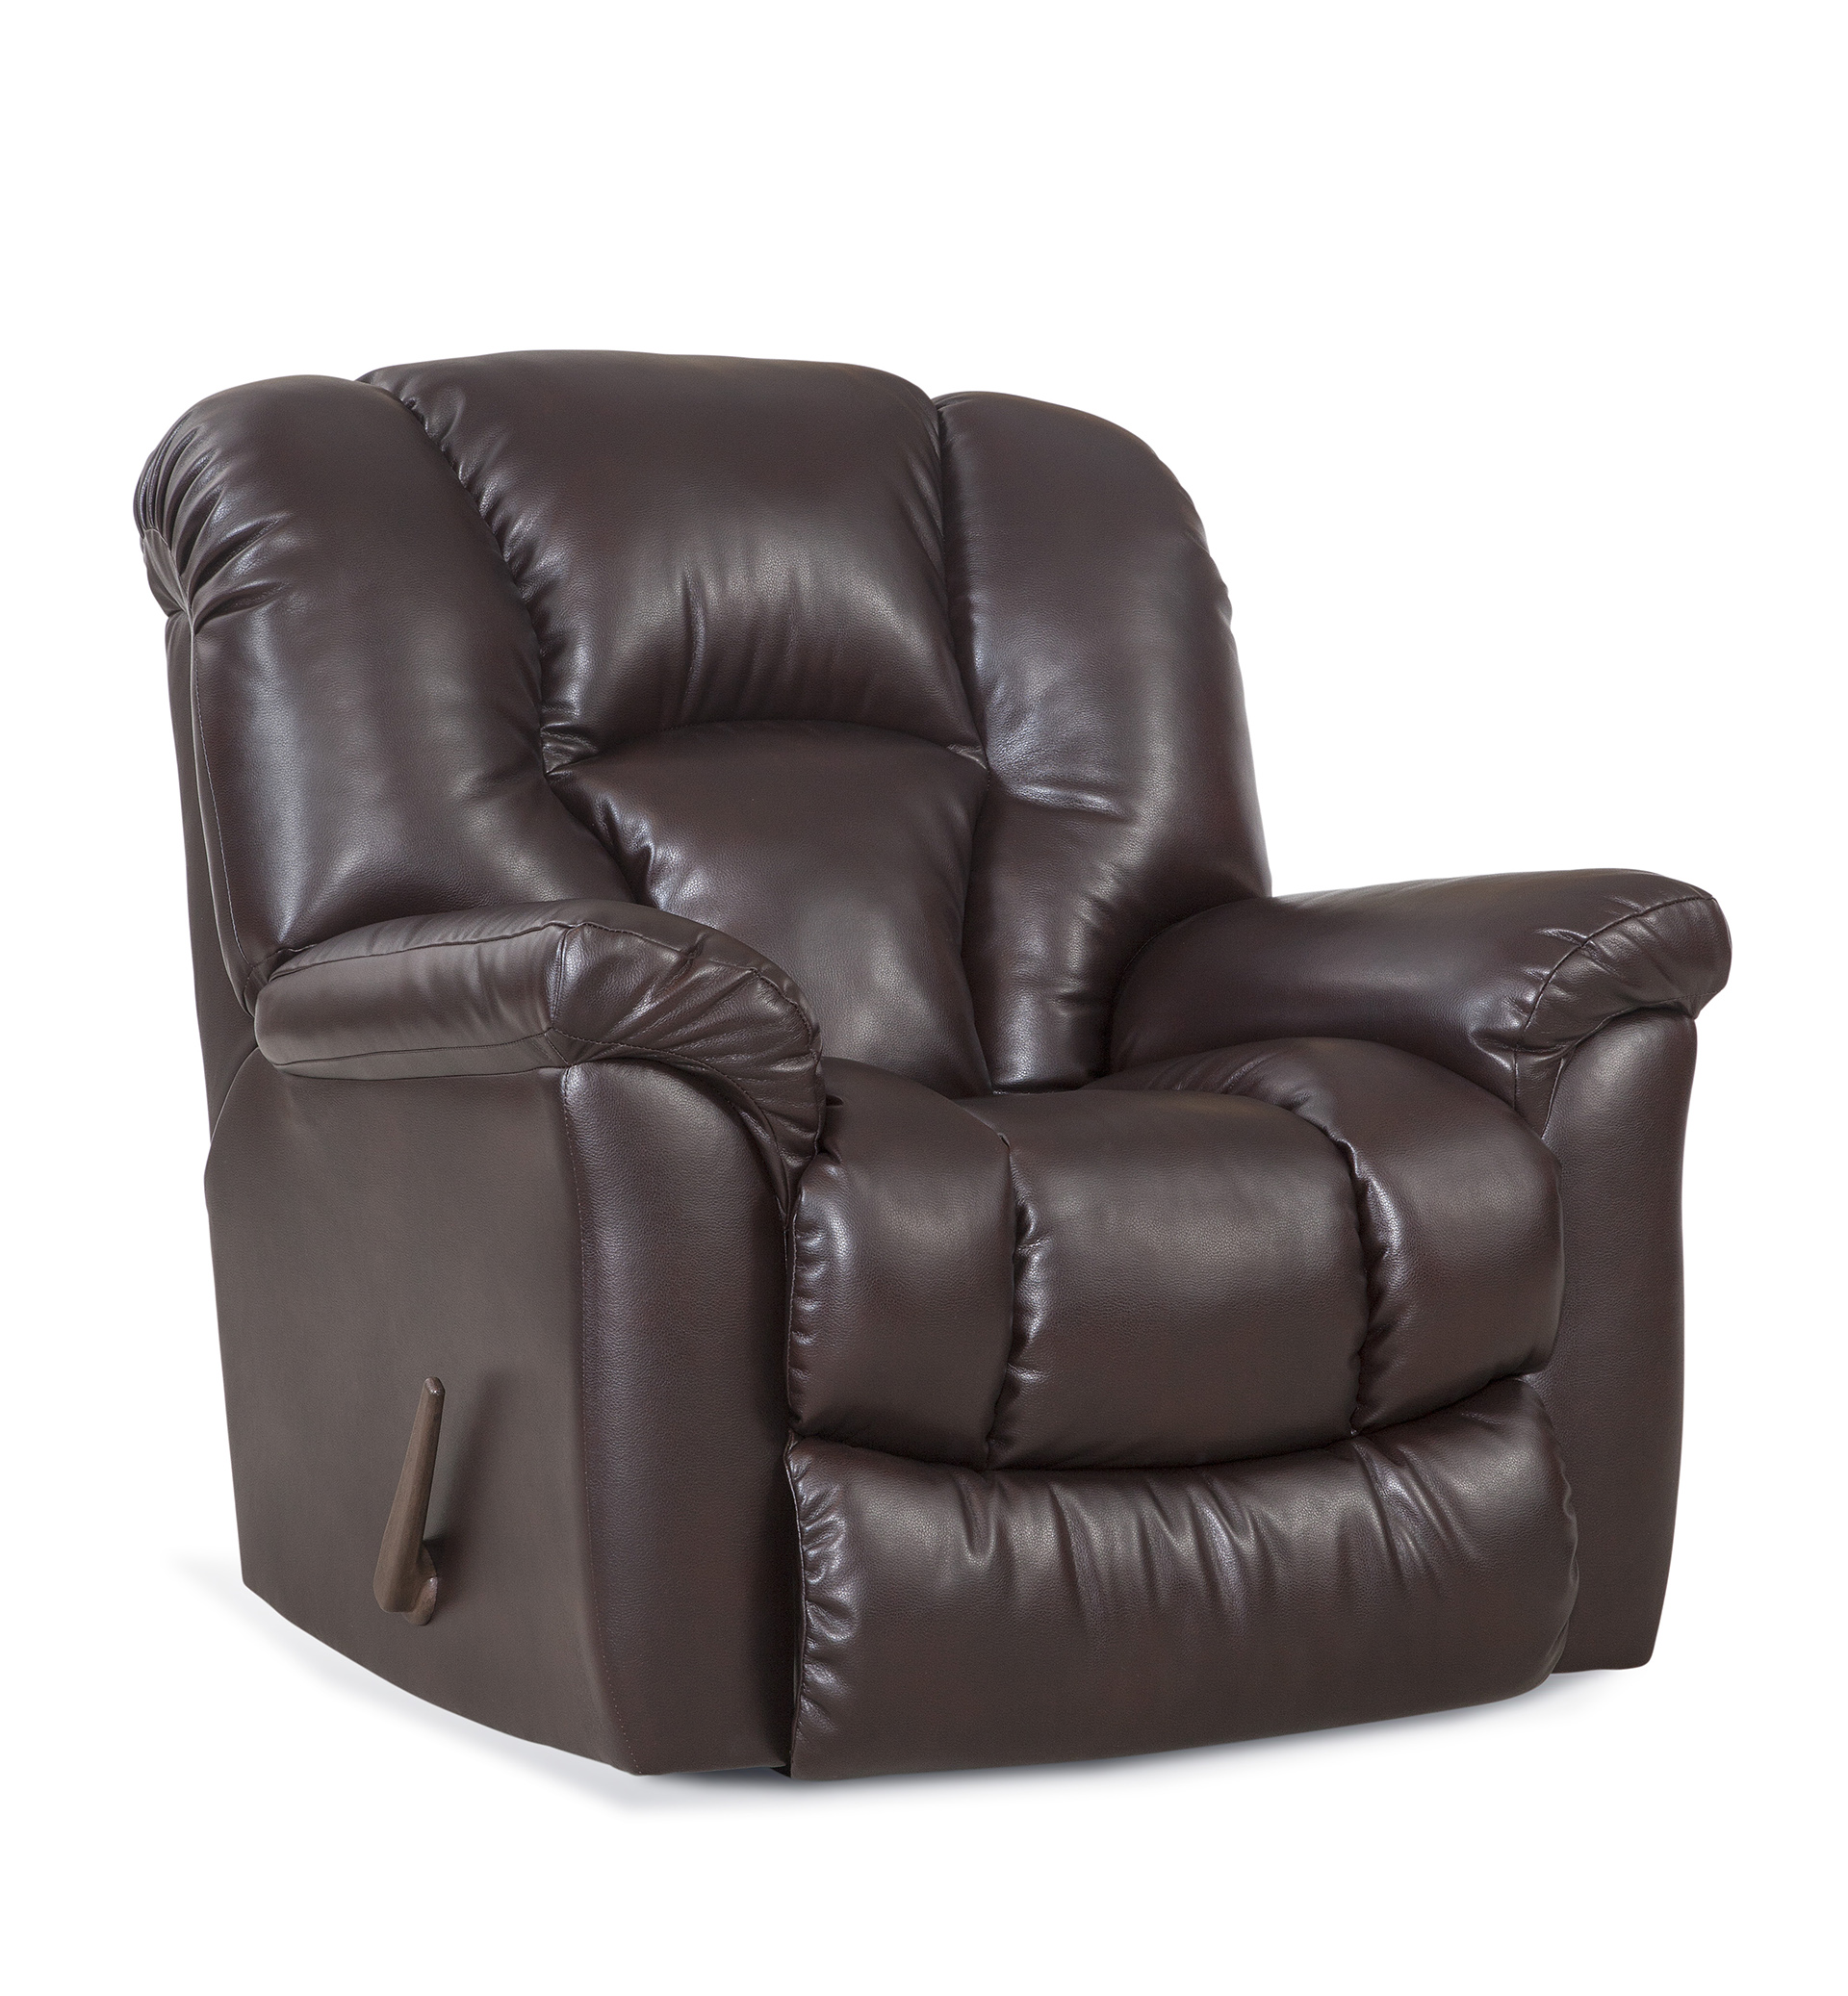 Astonishing Homestretch Put Your Feet Up Recliners Unemploymentrelief Wooden Chair Designs For Living Room Unemploymentrelieforg